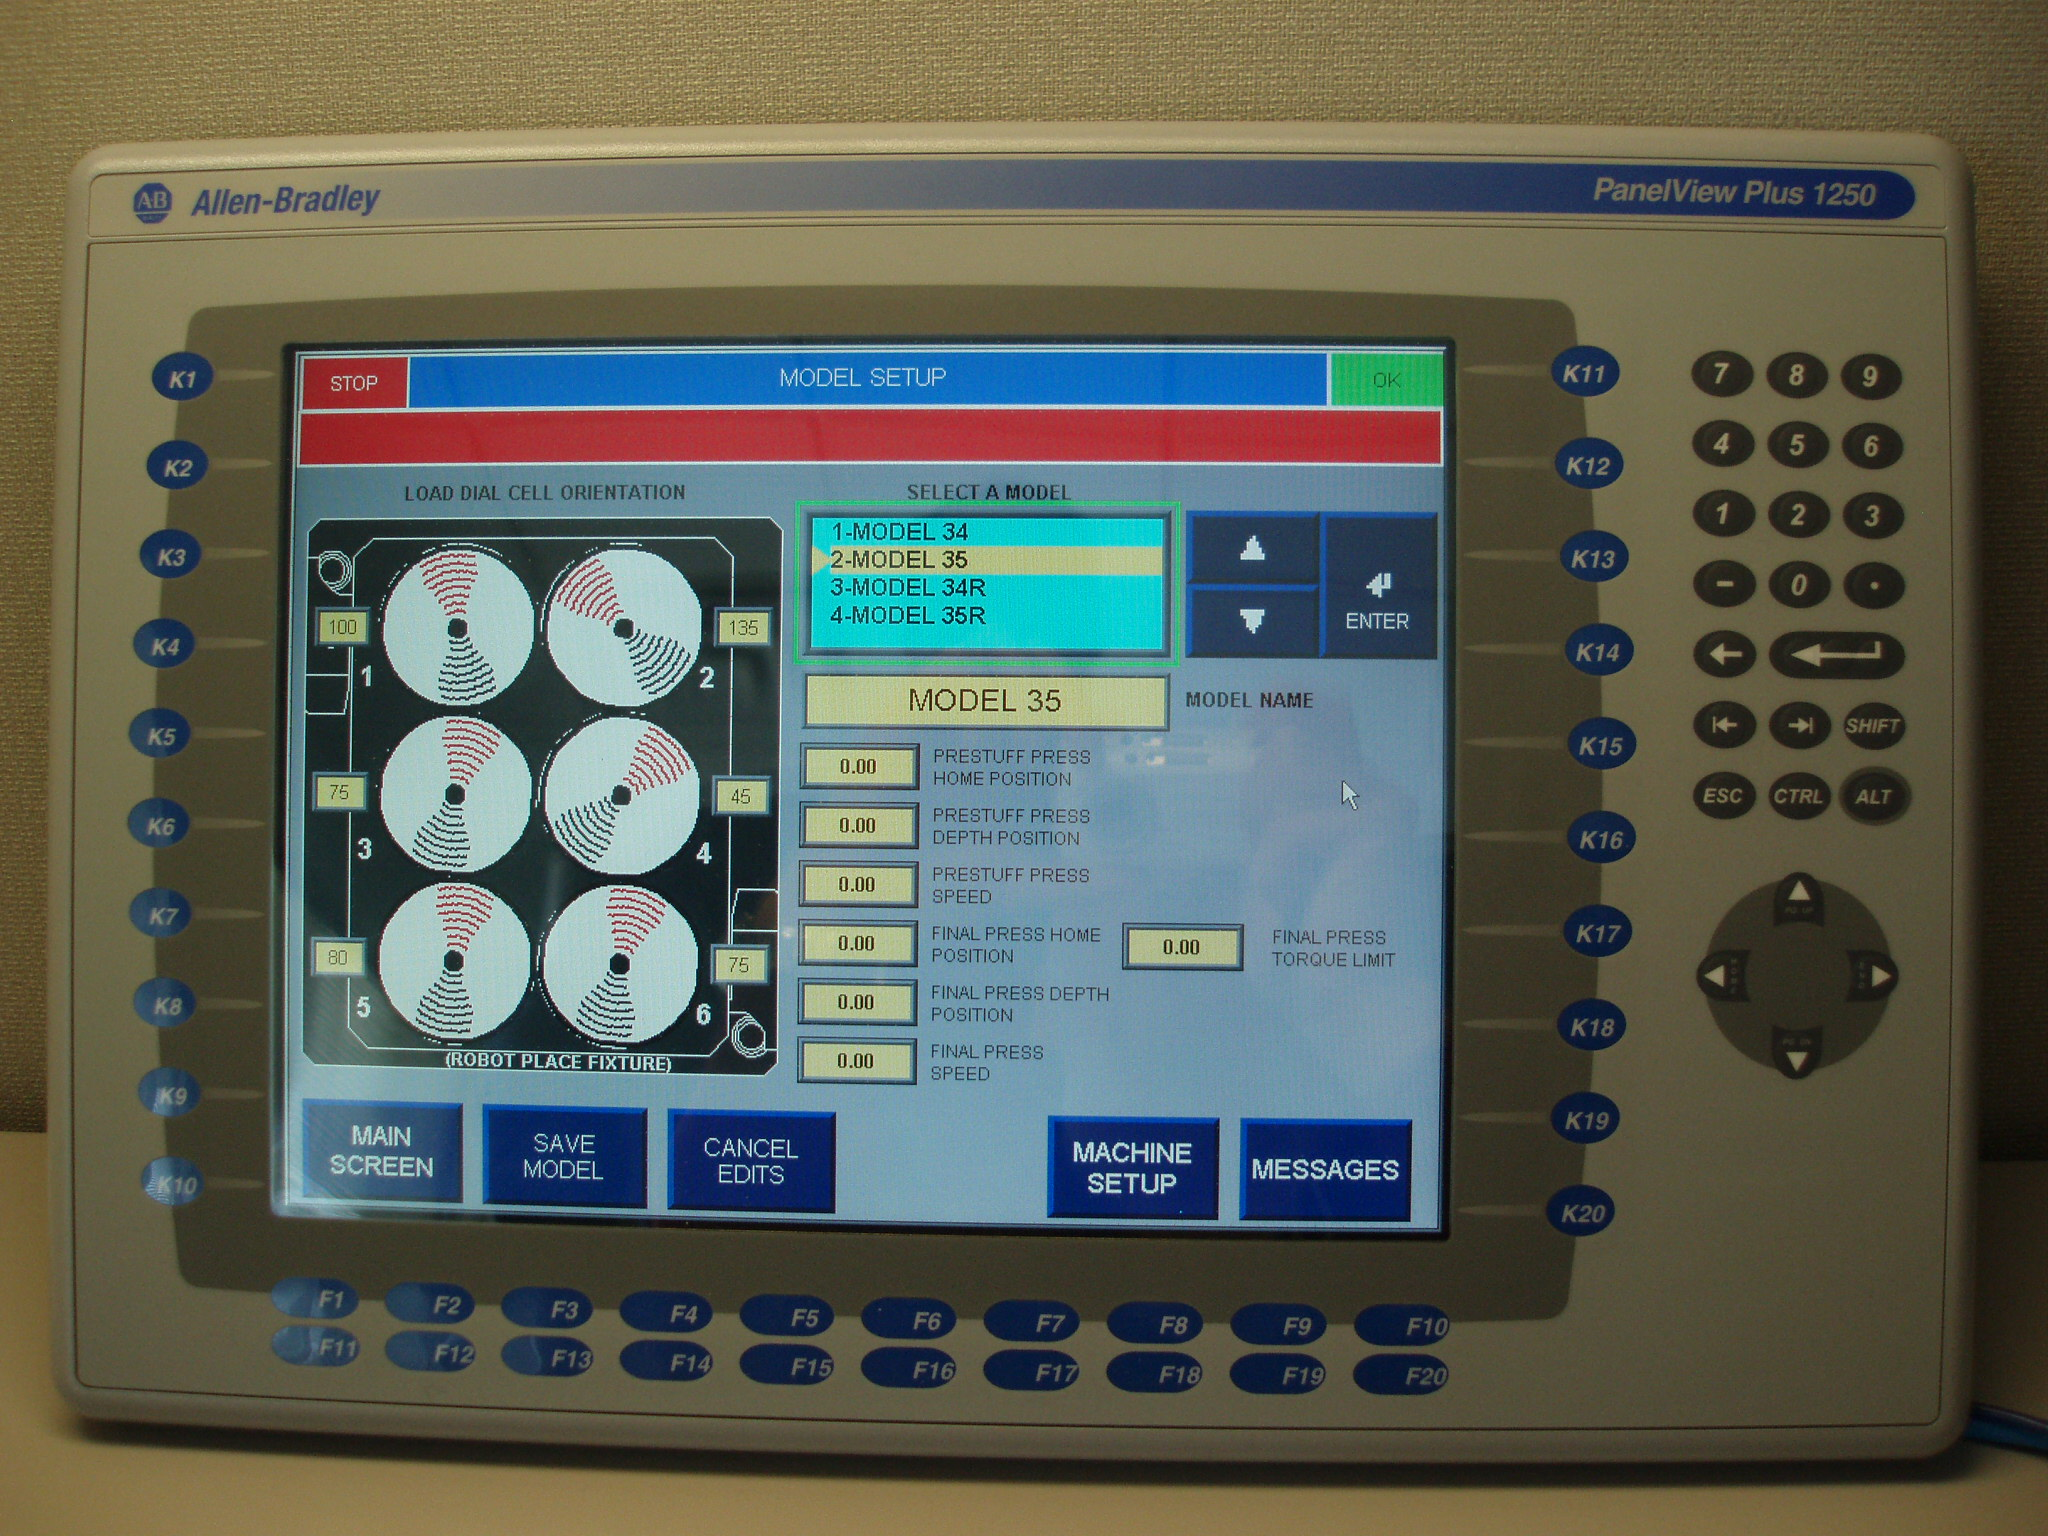 HMI Screen 1